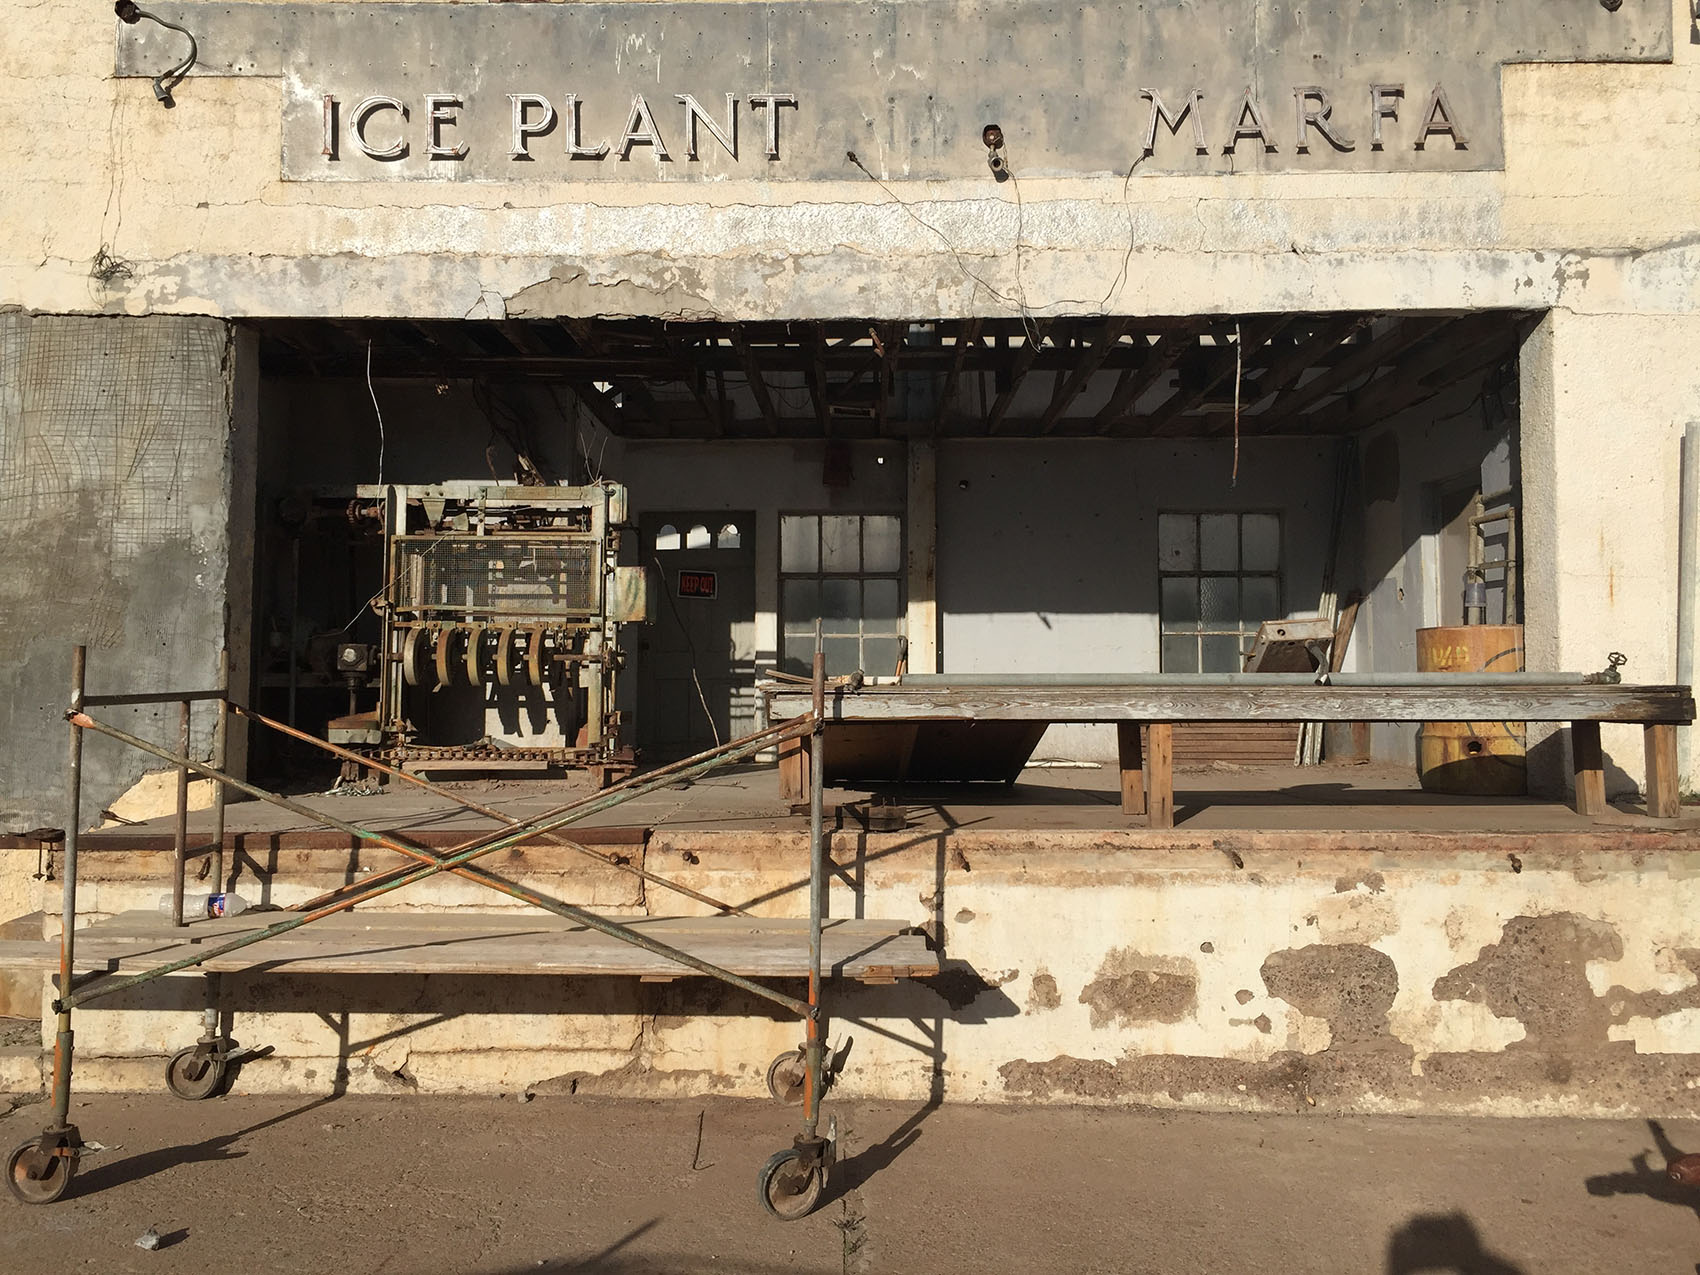 The abandoned ice plant, Marfa